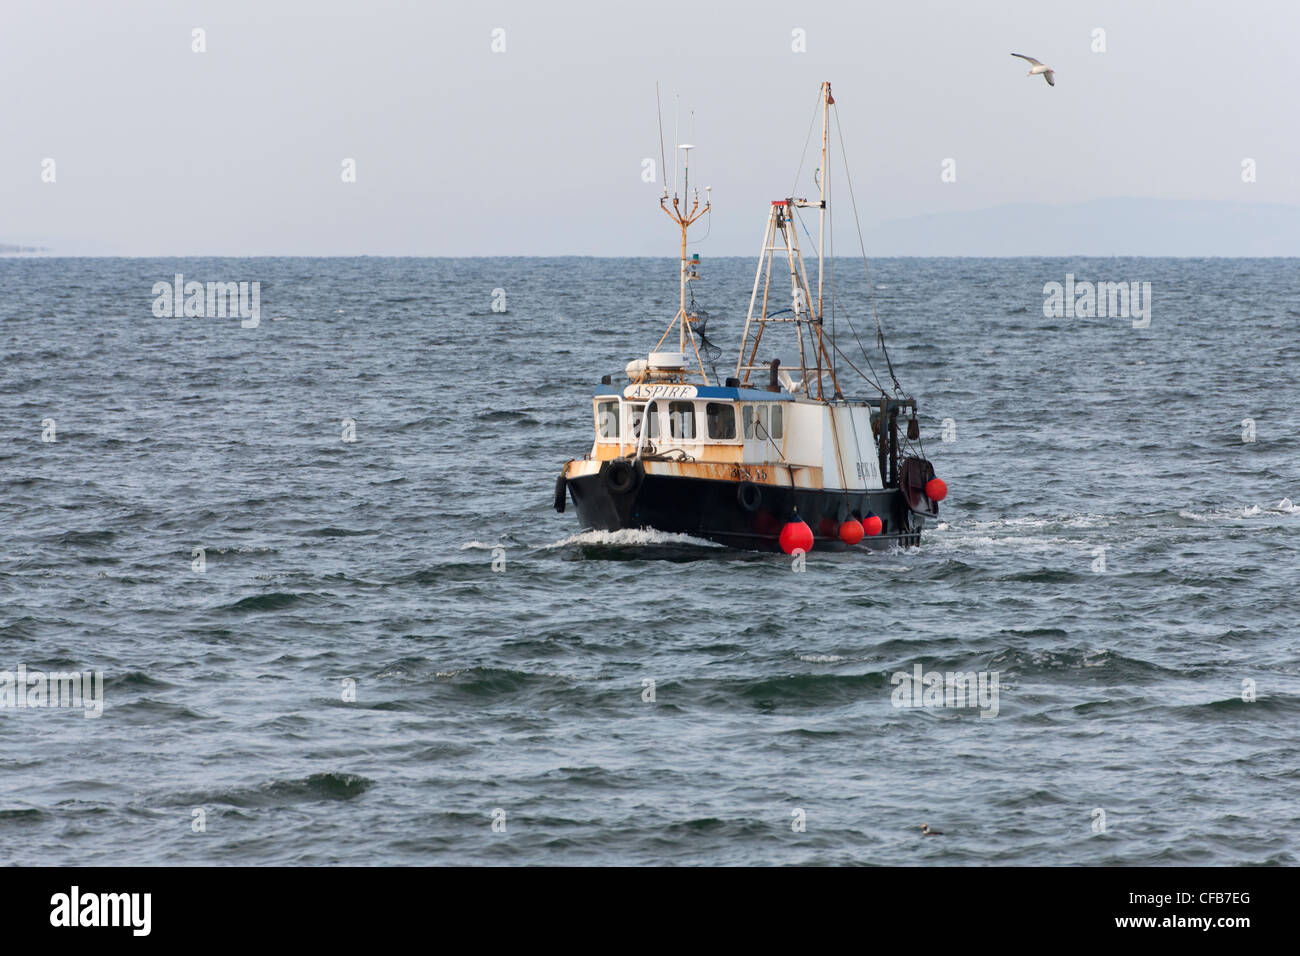 Inshore fishing boat BCK16 'Aspire' approach entrance to Burghead Harbour on the Moray Firth - Stock Image